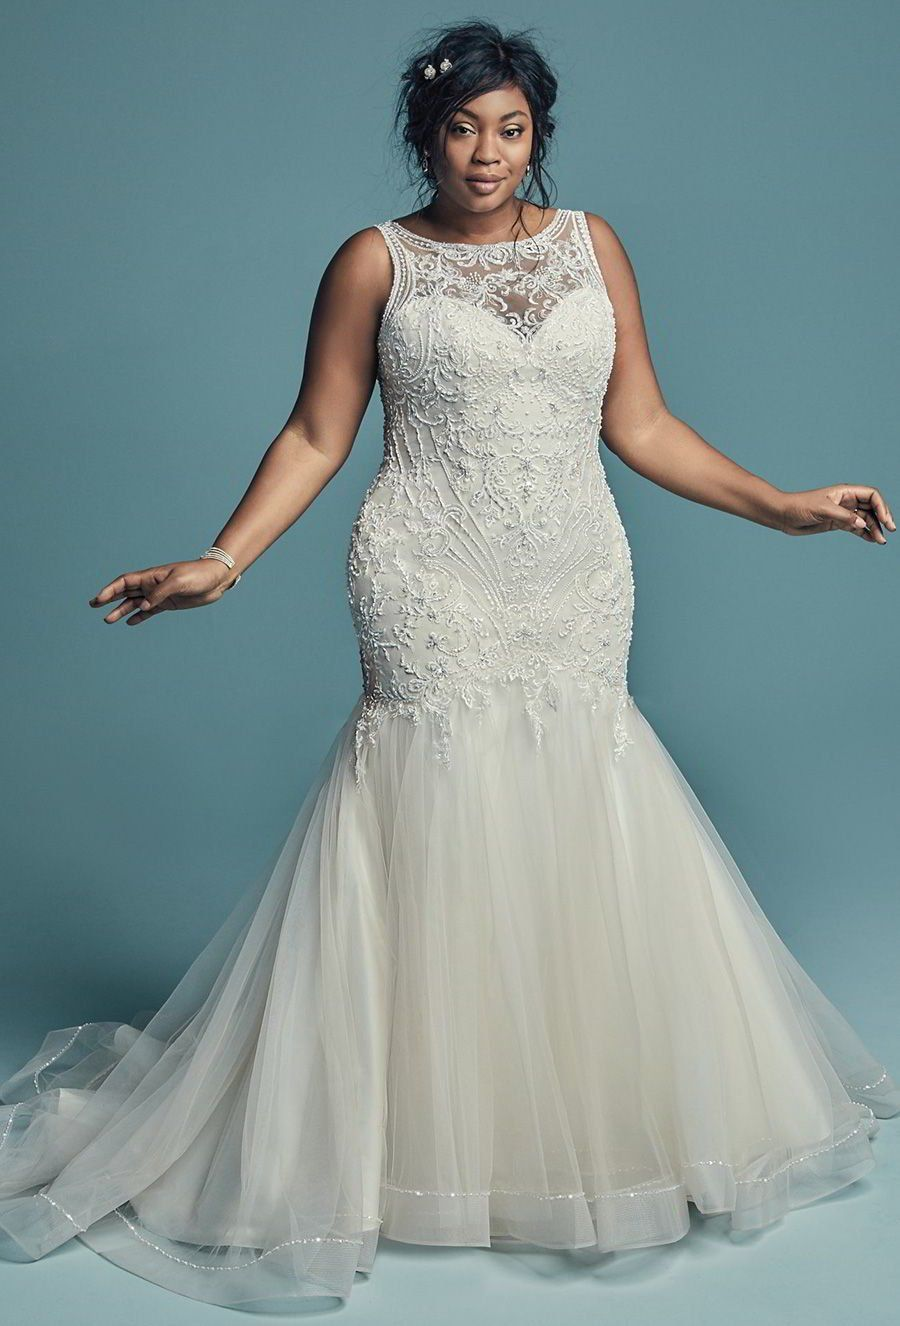 A Gold Dress For A Glamorous Wedding Yes Please Fall In Love With These Stunning Gowns From Maggie Sottero Designs Wedding Inspirasi Sottero Wedding Dress Wedding Dresses Plus Size [ 1326 x 900 Pixel ]